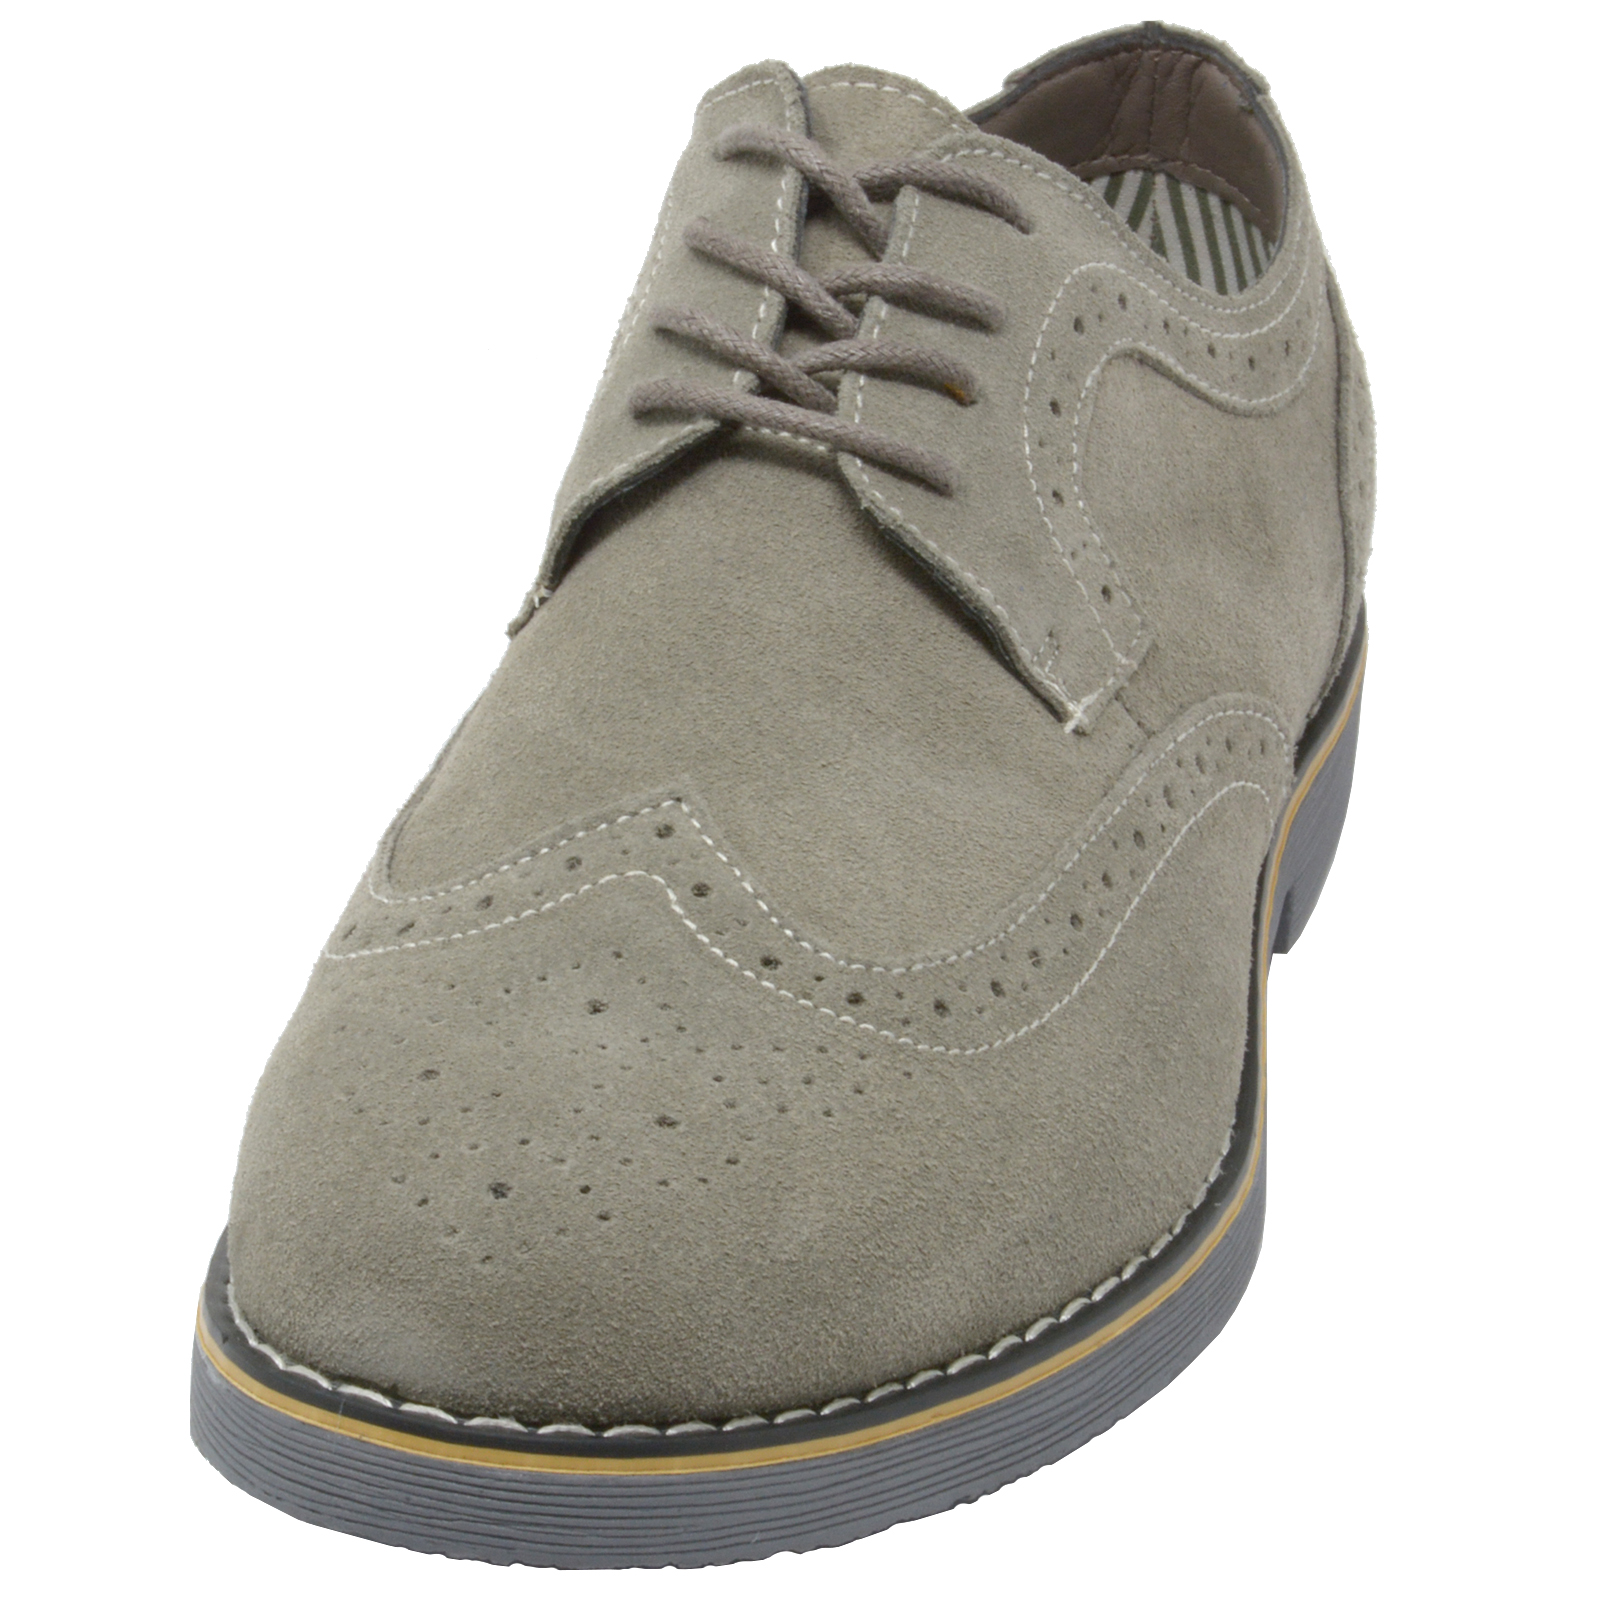 Alpine-Swiss-Beau-Mens-Dress-Shoes-Genuine-Suede-Wing-Tip-Brogue-Lace-Up-Oxfords thumbnail 15